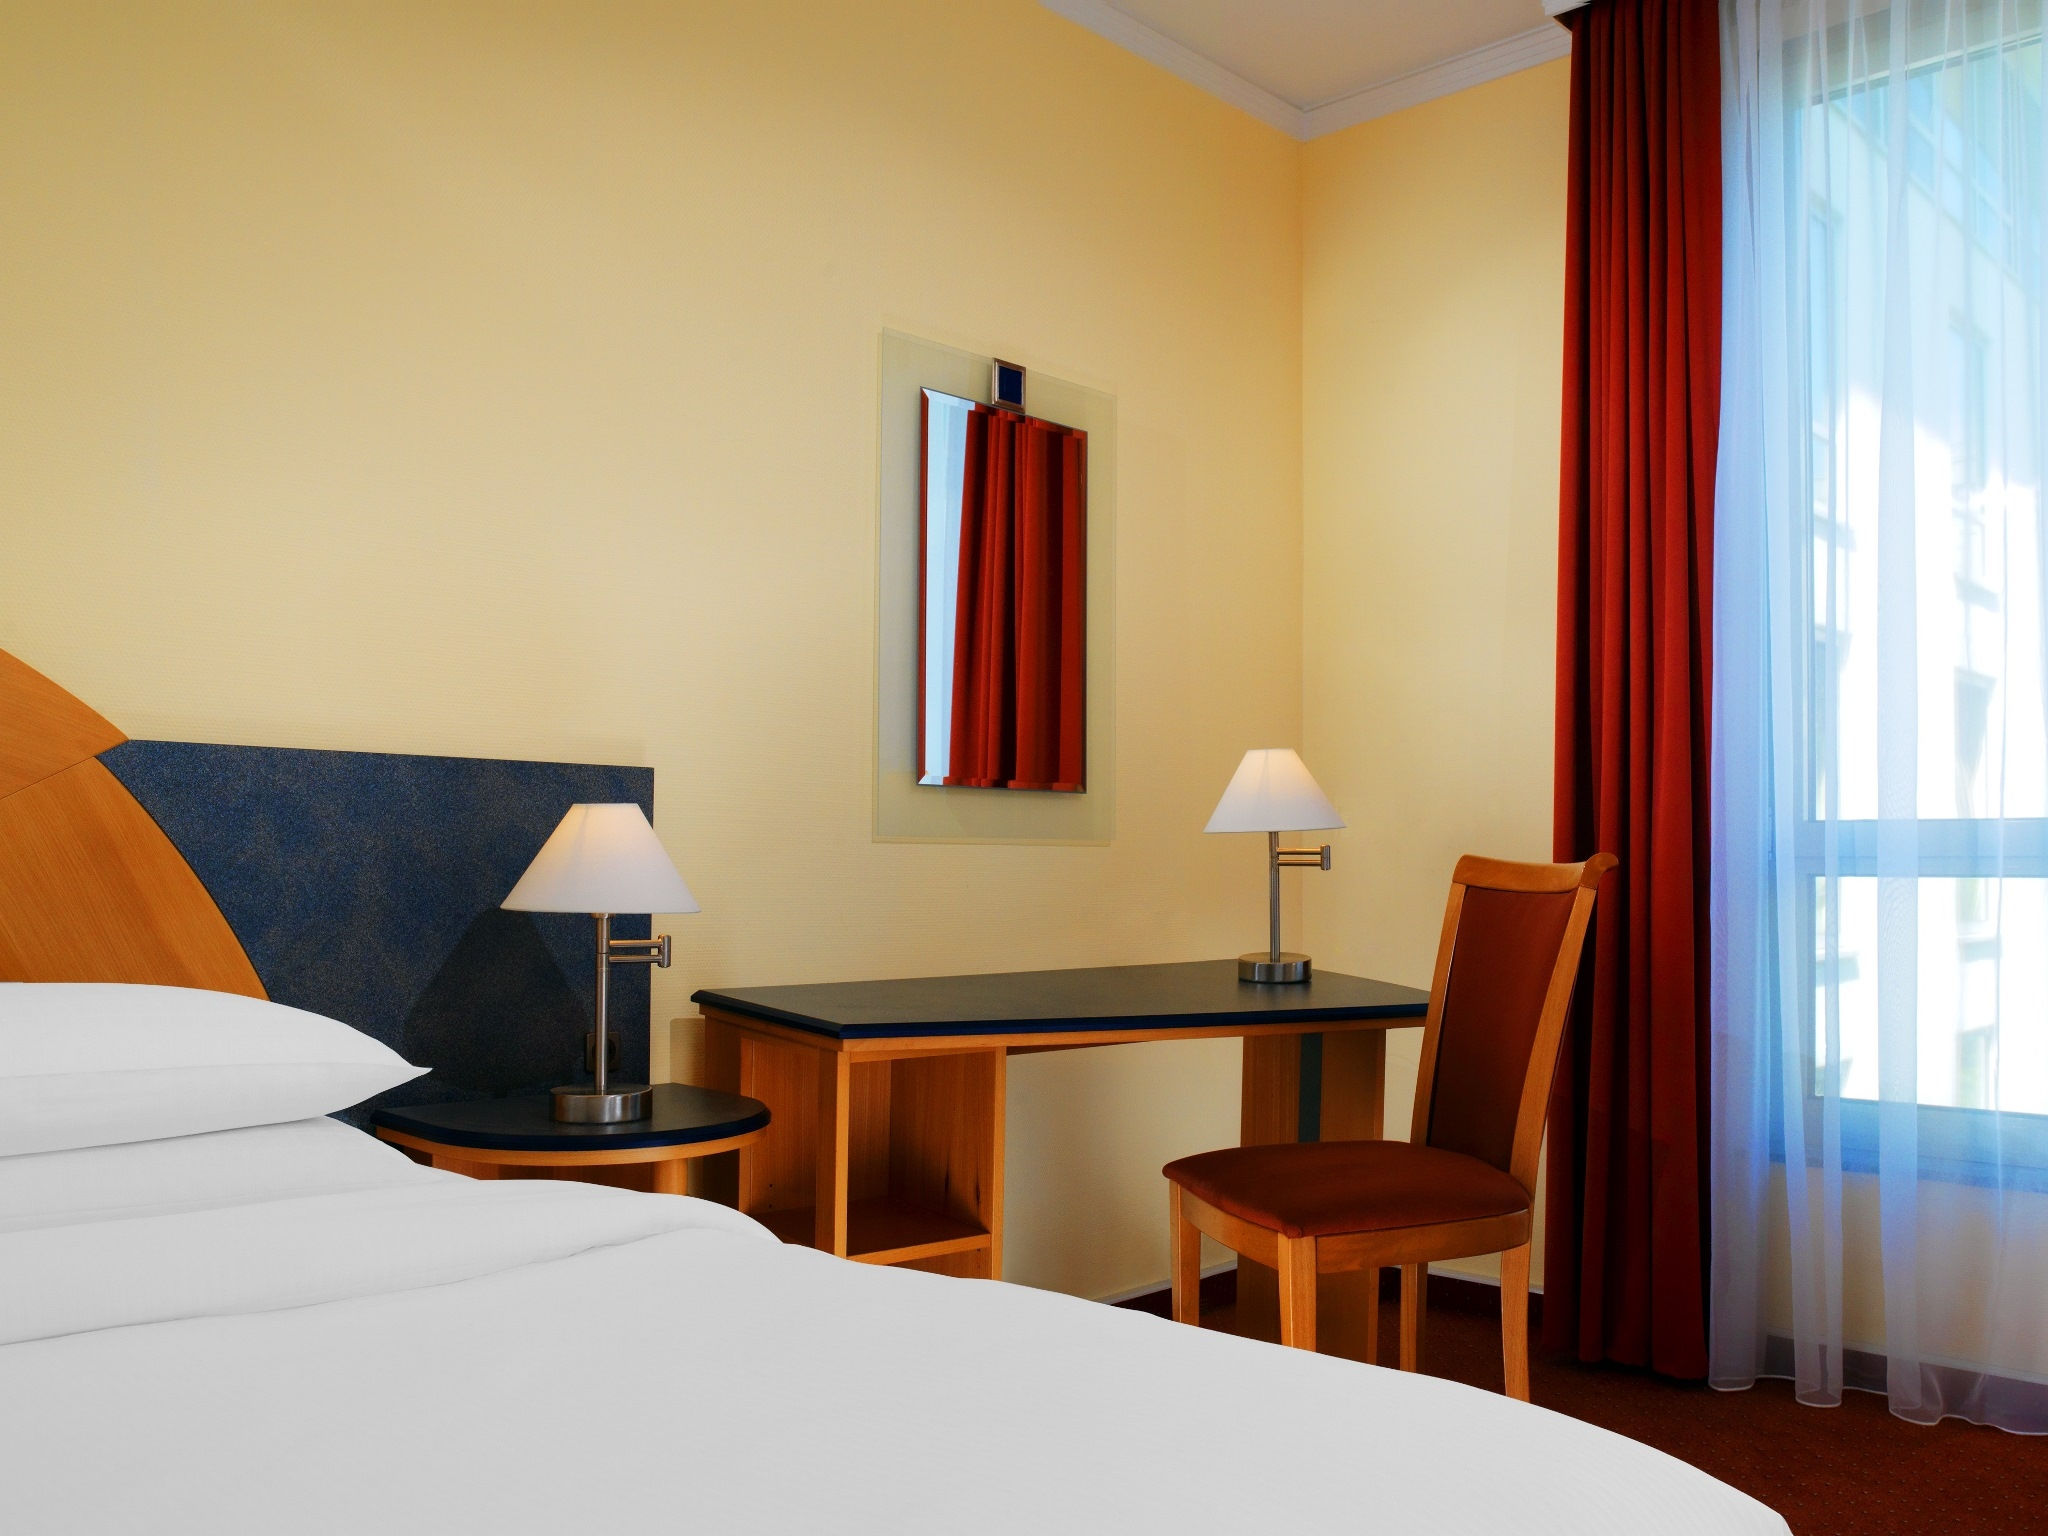 Rooms suites at sheraton offenbach hotel for Hotel offenbach